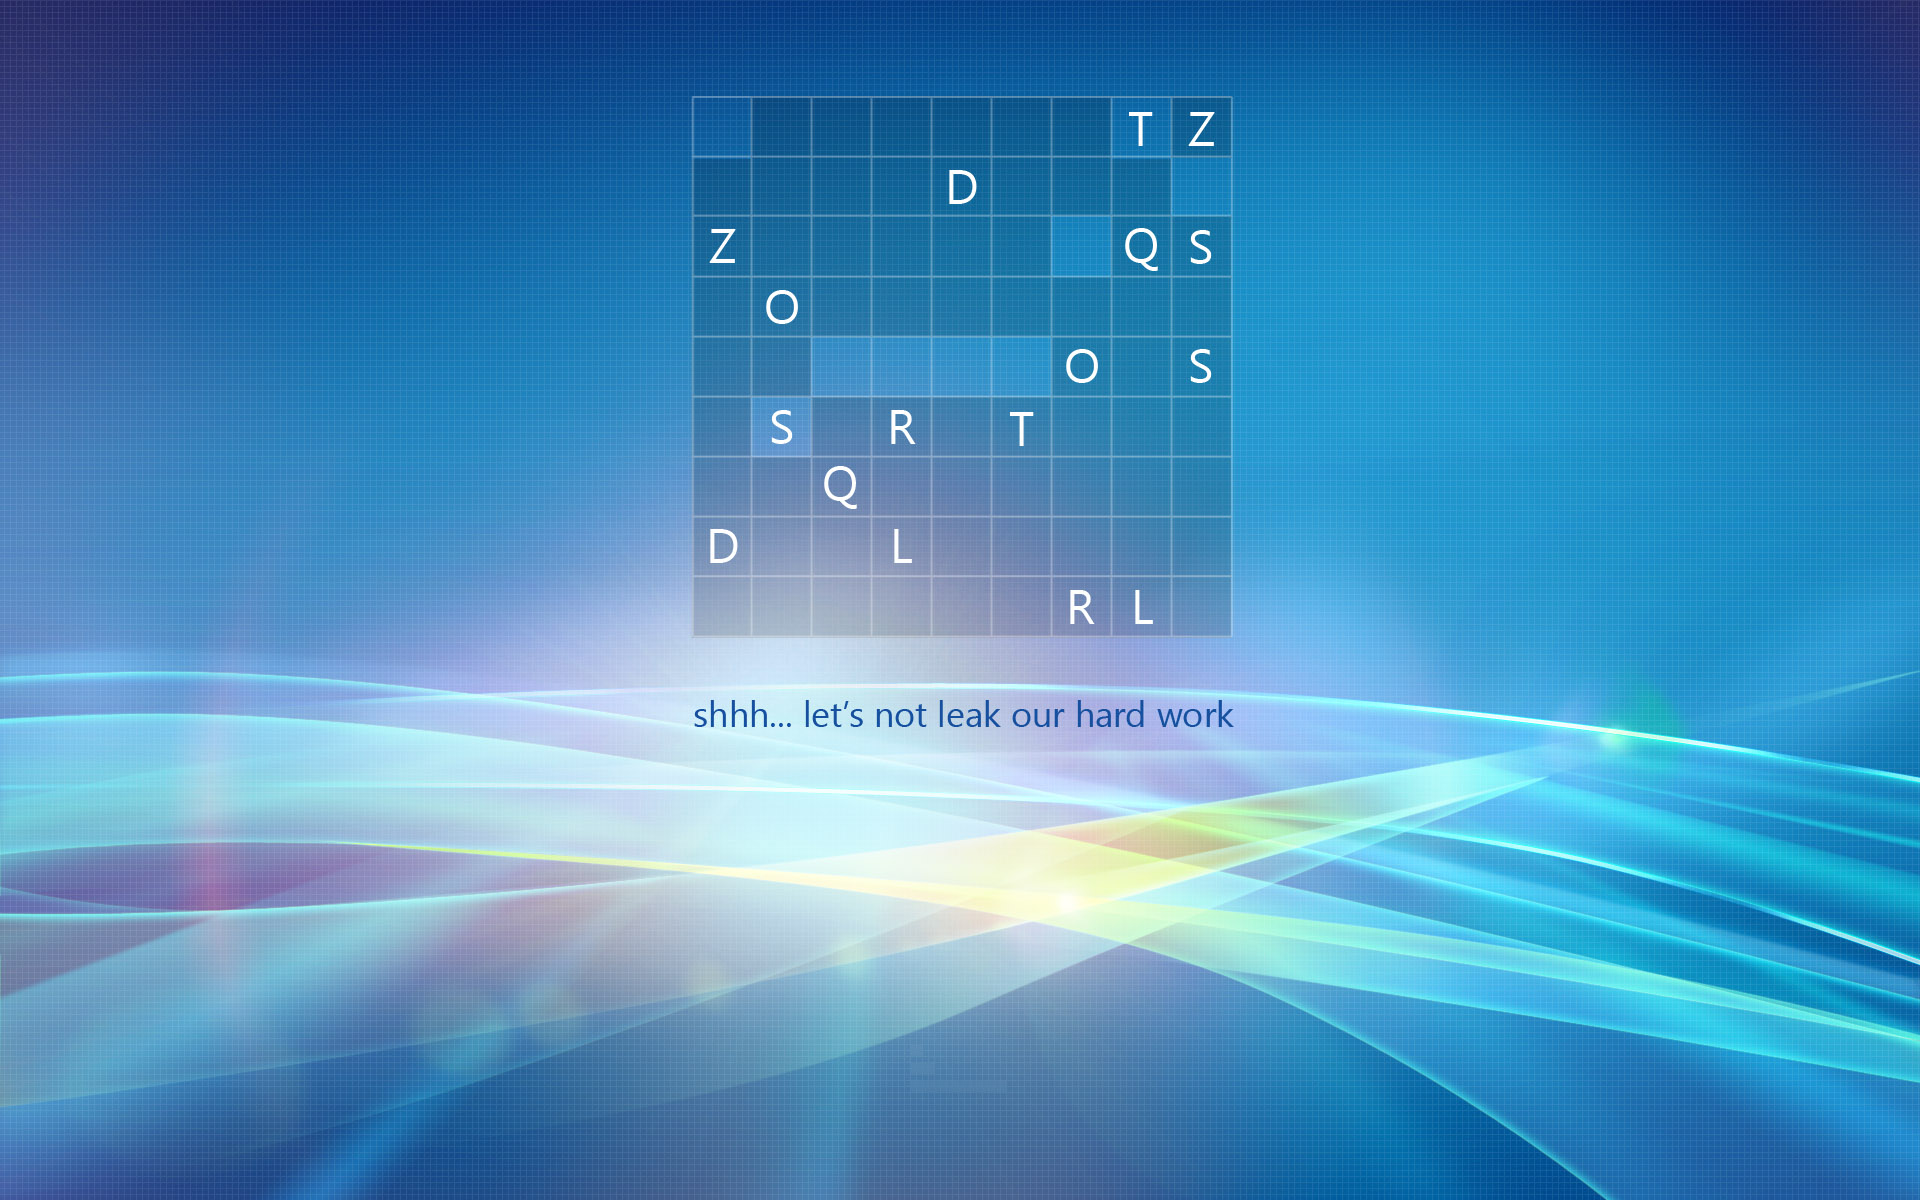 Download Our Windows 8